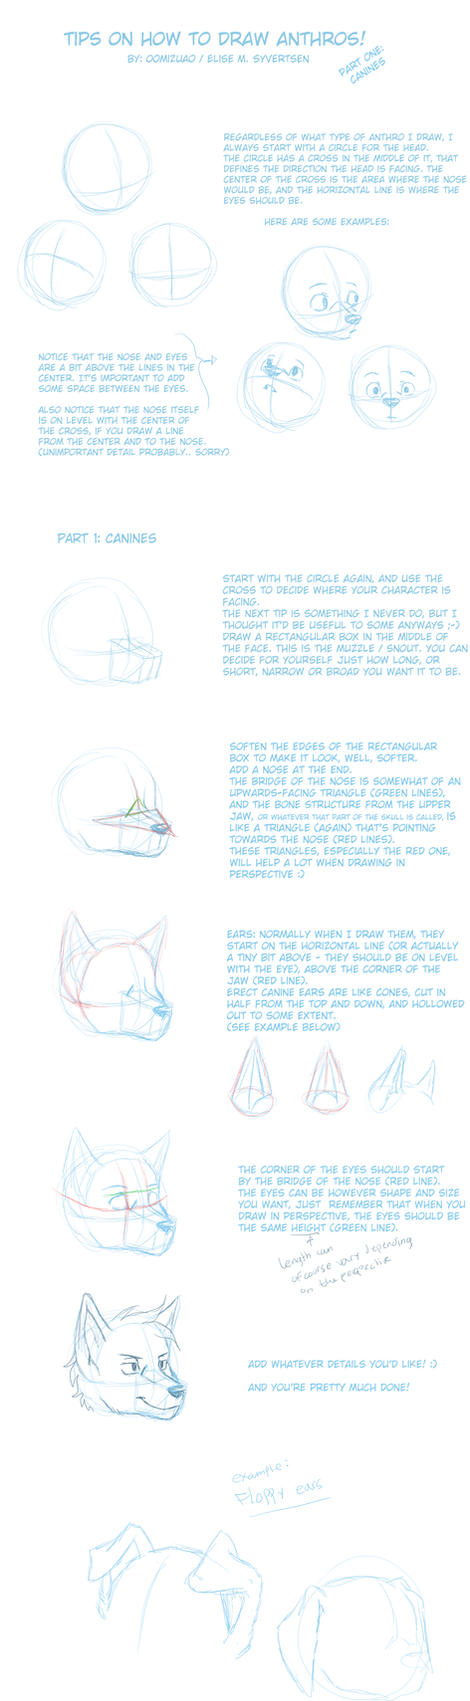 anthro drawing tips - canines by oomizuao